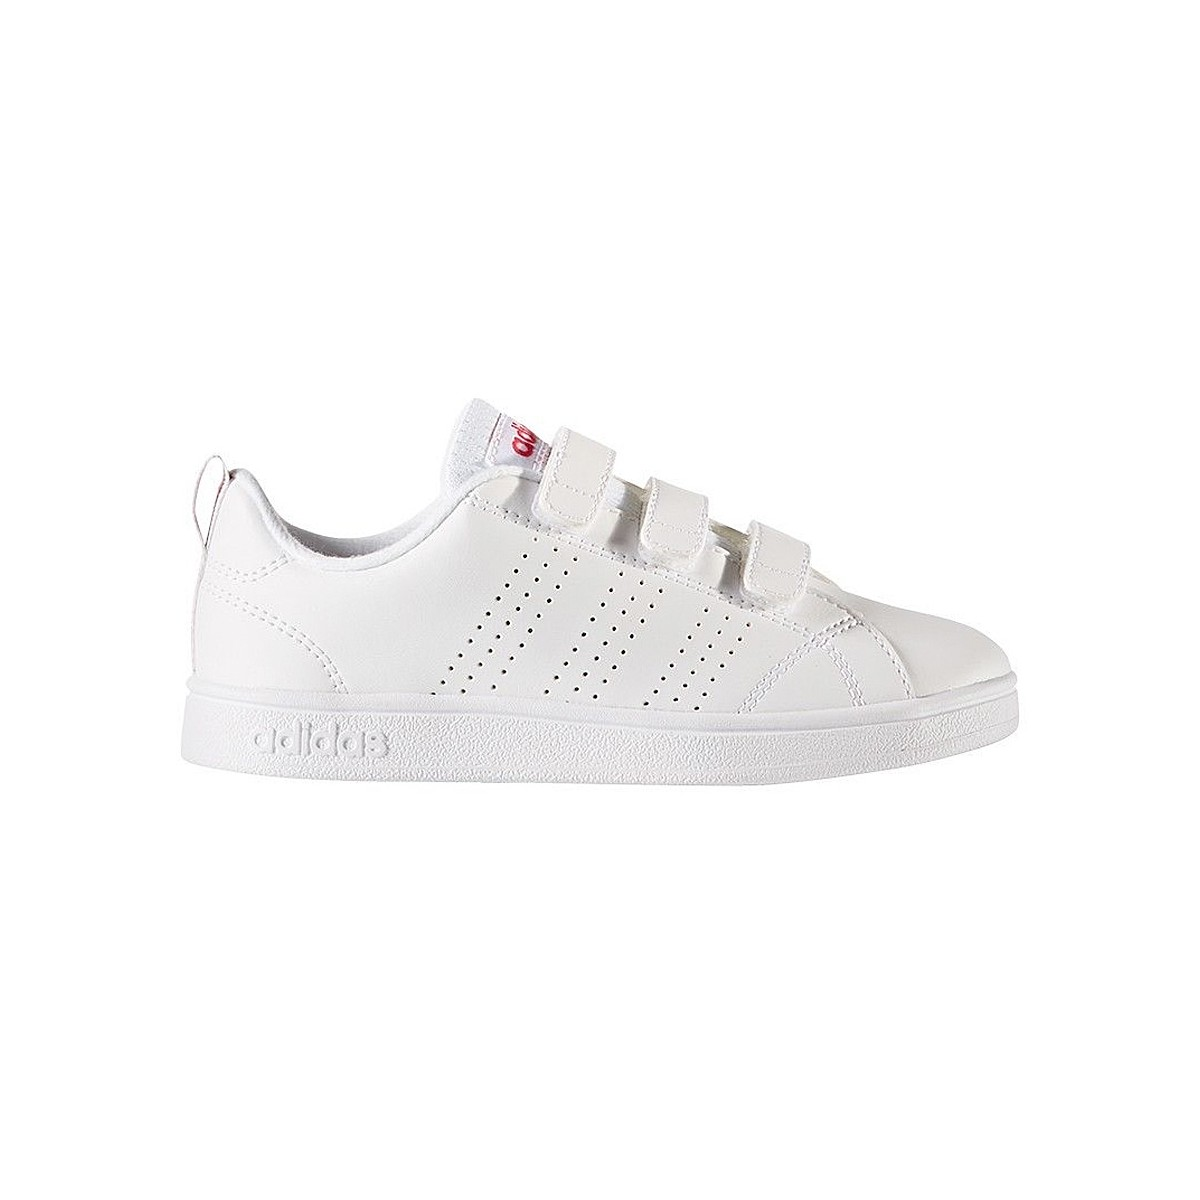 Fille Rose21 Adidas Blanc Sneakers 27 Adv Advantage Clean WQdCBorxe